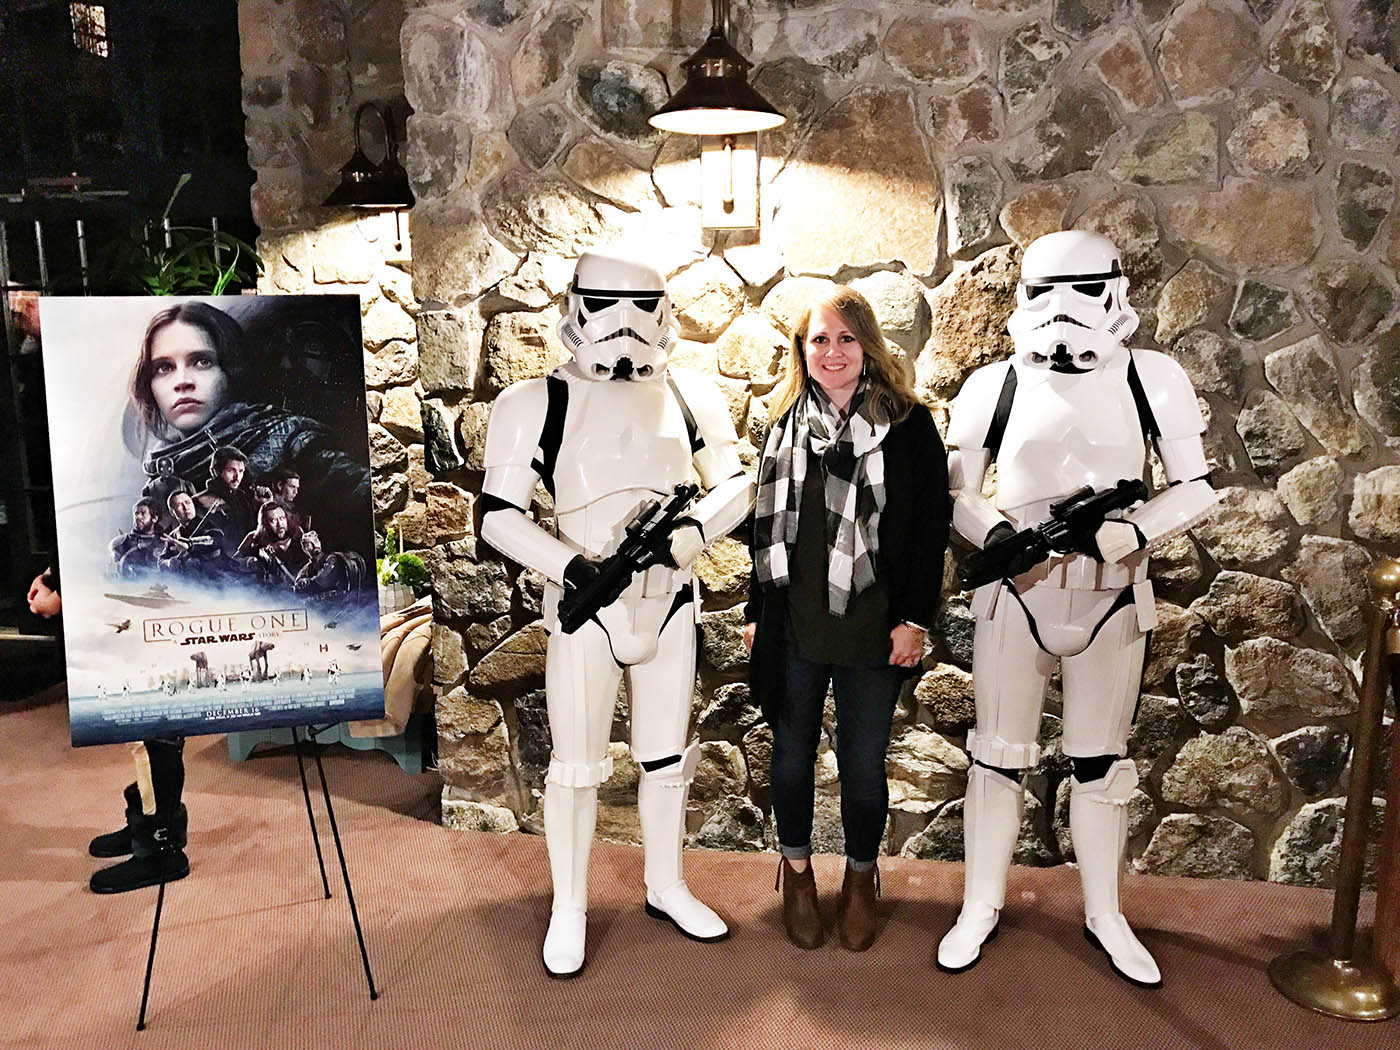 Visiting Skywalker Ranch for the #RogueOneEvent